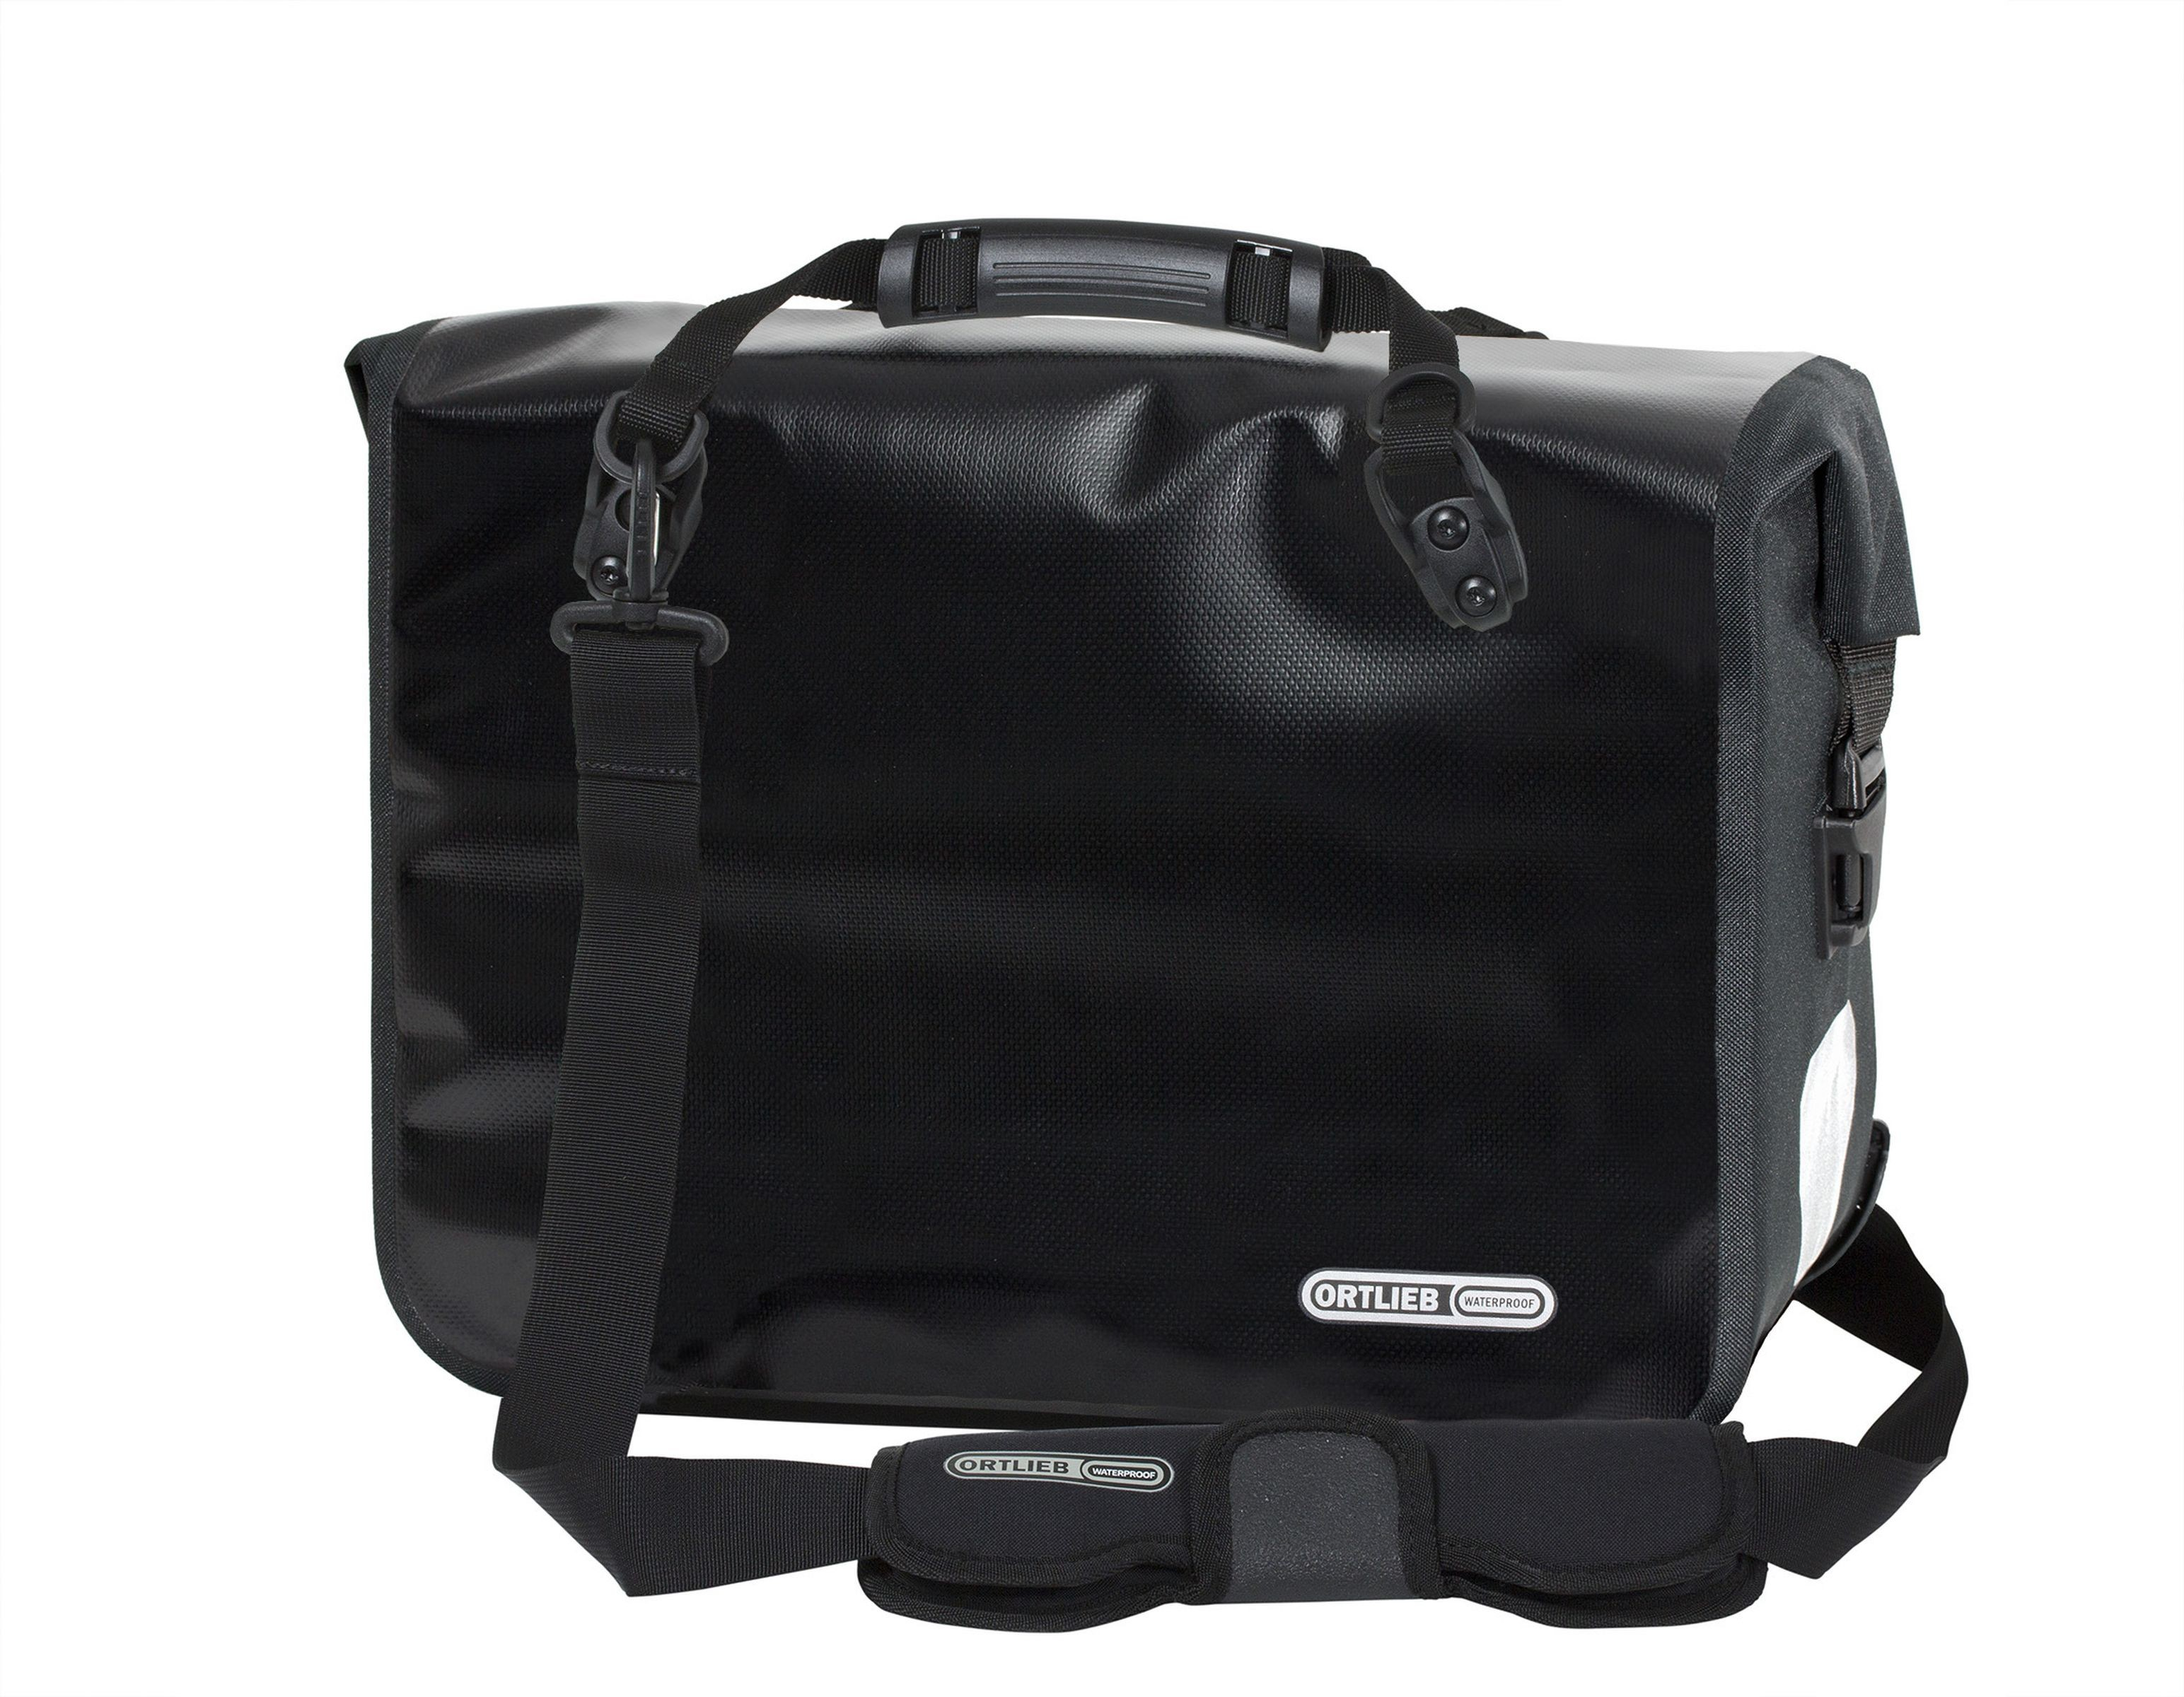 Ortlieb Office-Bag - Black-Reflective 21l - QL2.1 - PD620